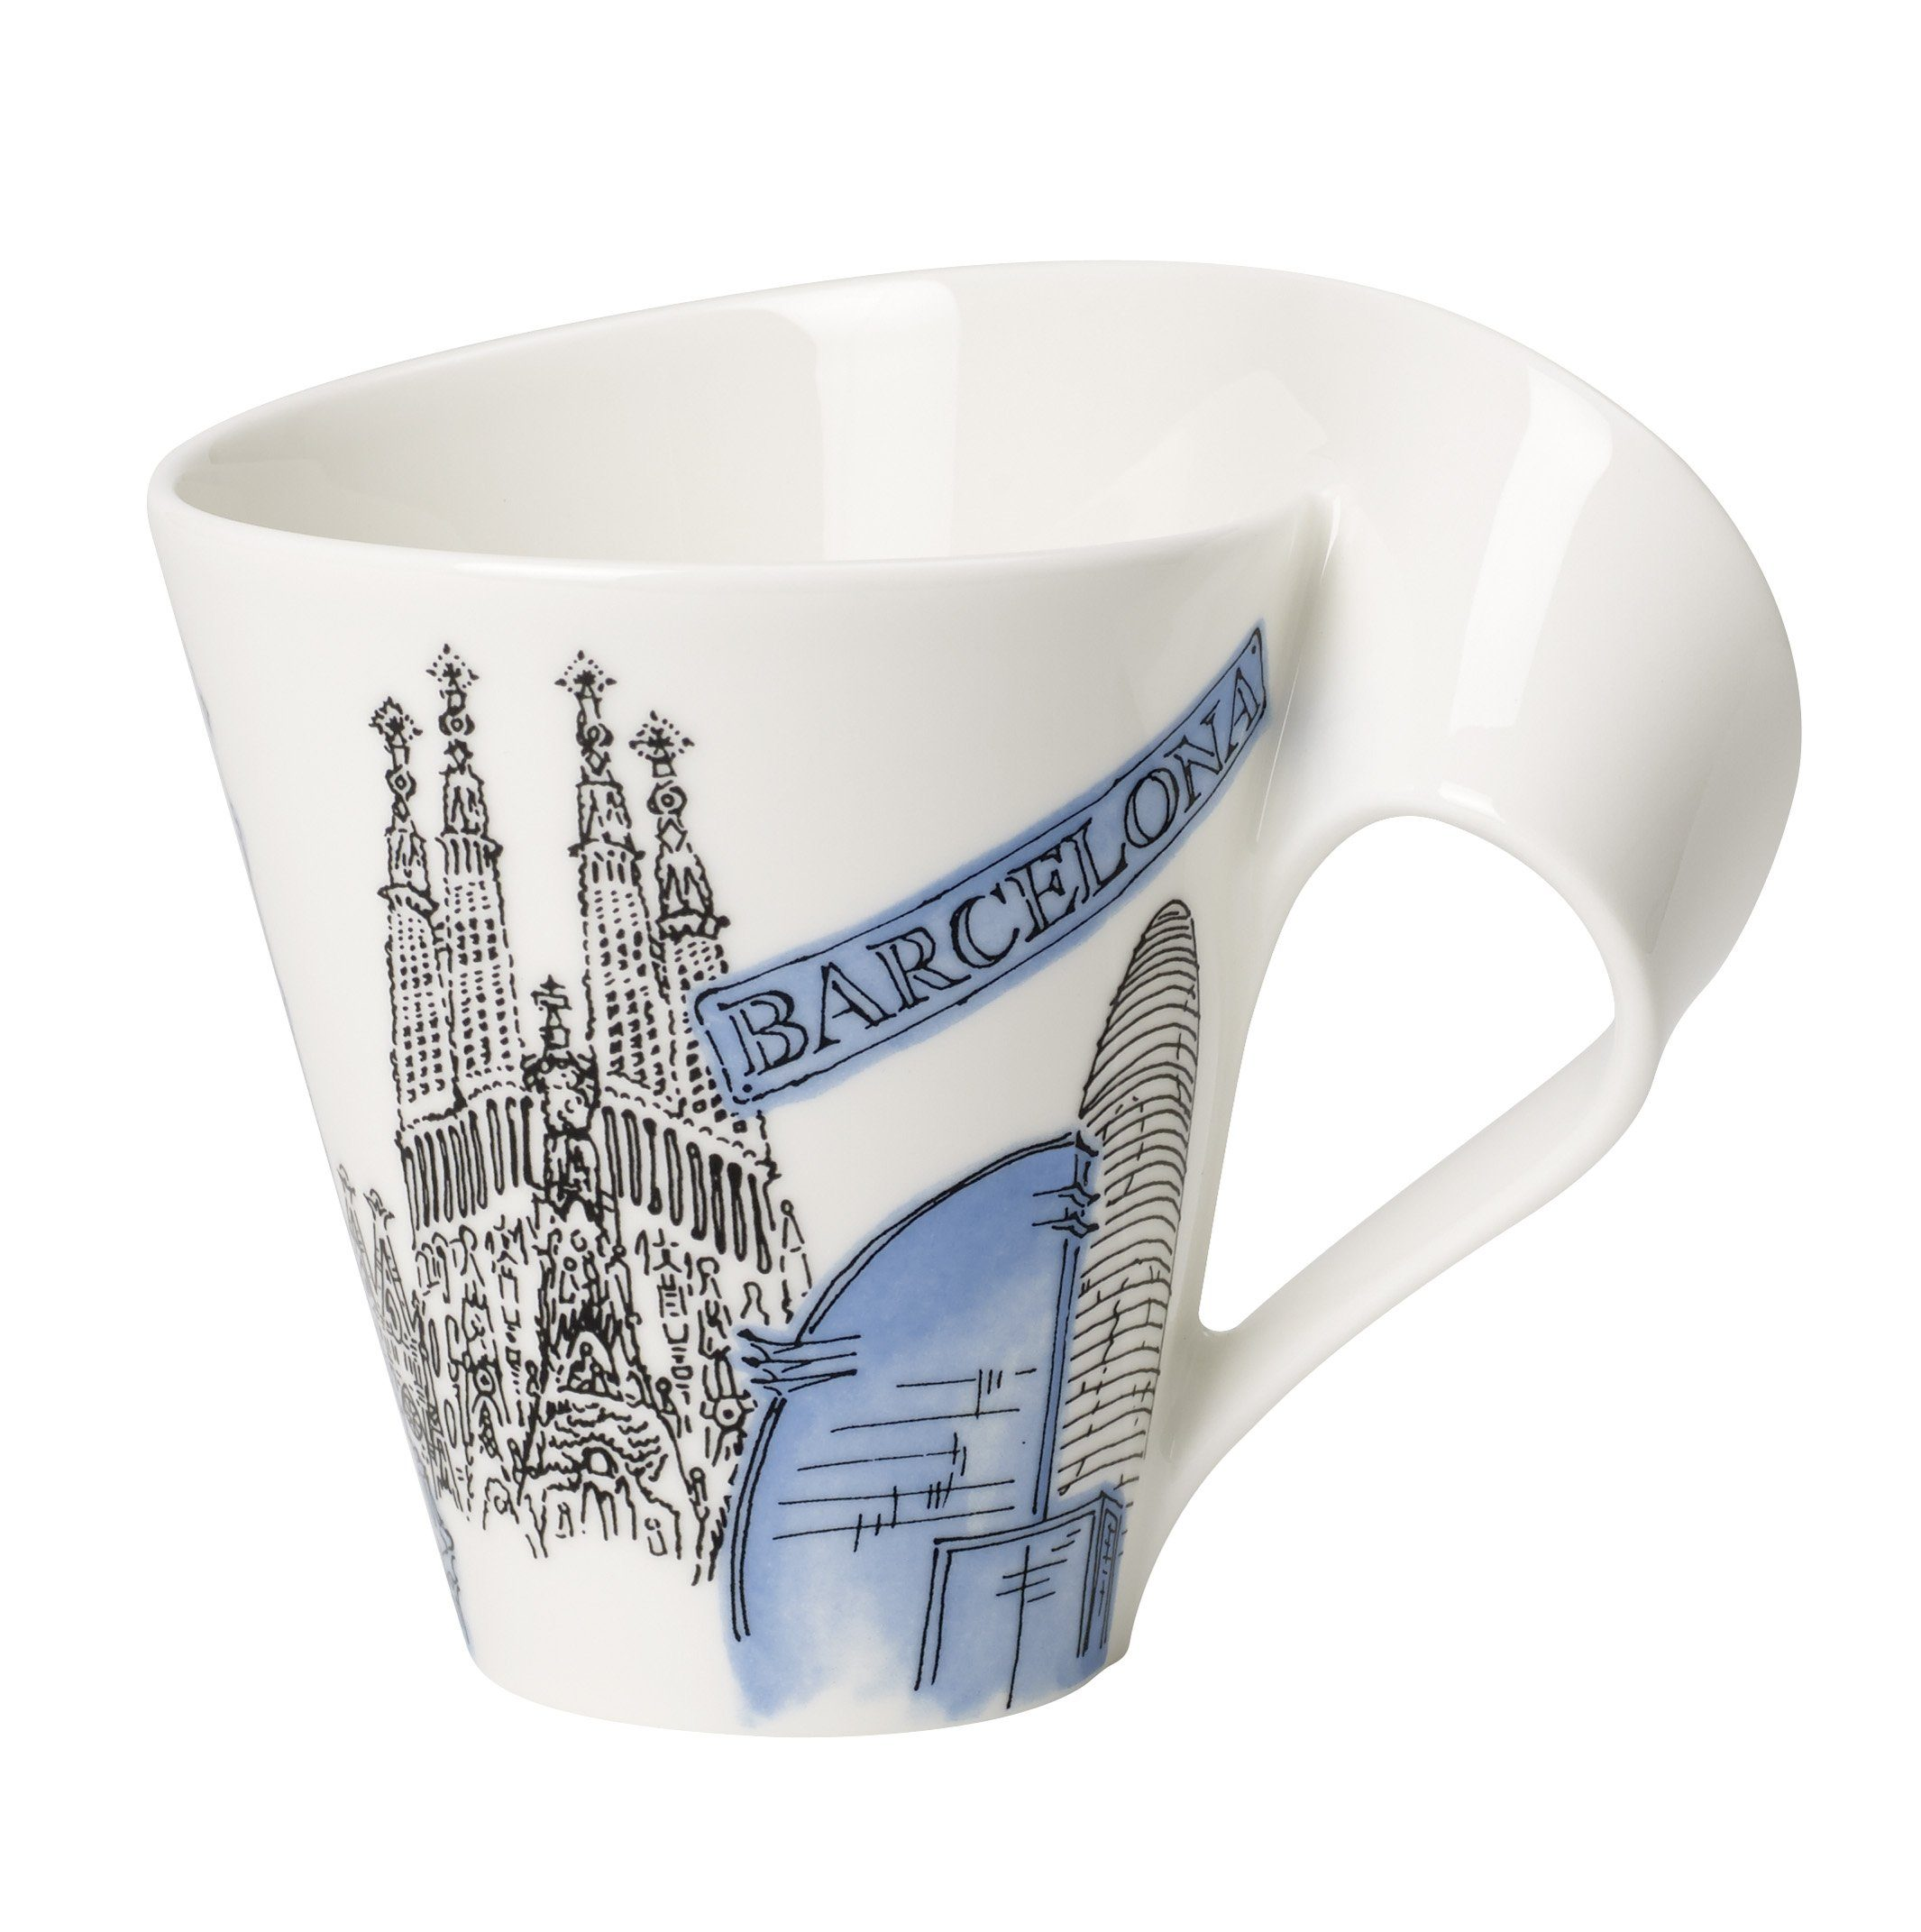 Villeroy & Boch Kaffeebecher Barcelona »Cities of the World«